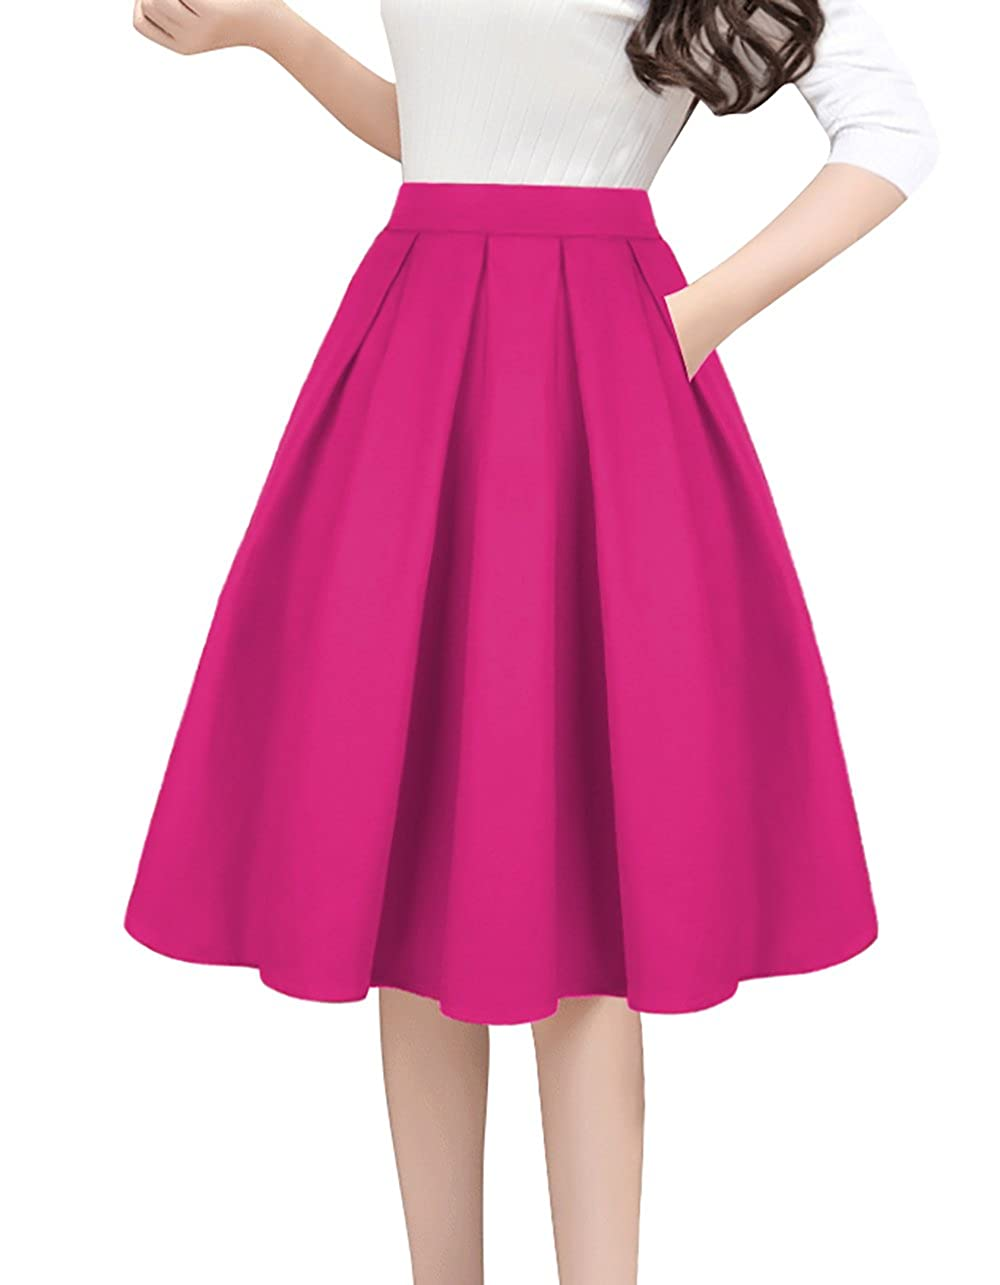 7cbf05875 High Waist Elastic Waist,Inverted pleat style,Zip-back fastening,Side Pockets  Pleated Feminine design for Retro skirt, You can wear the prom ...